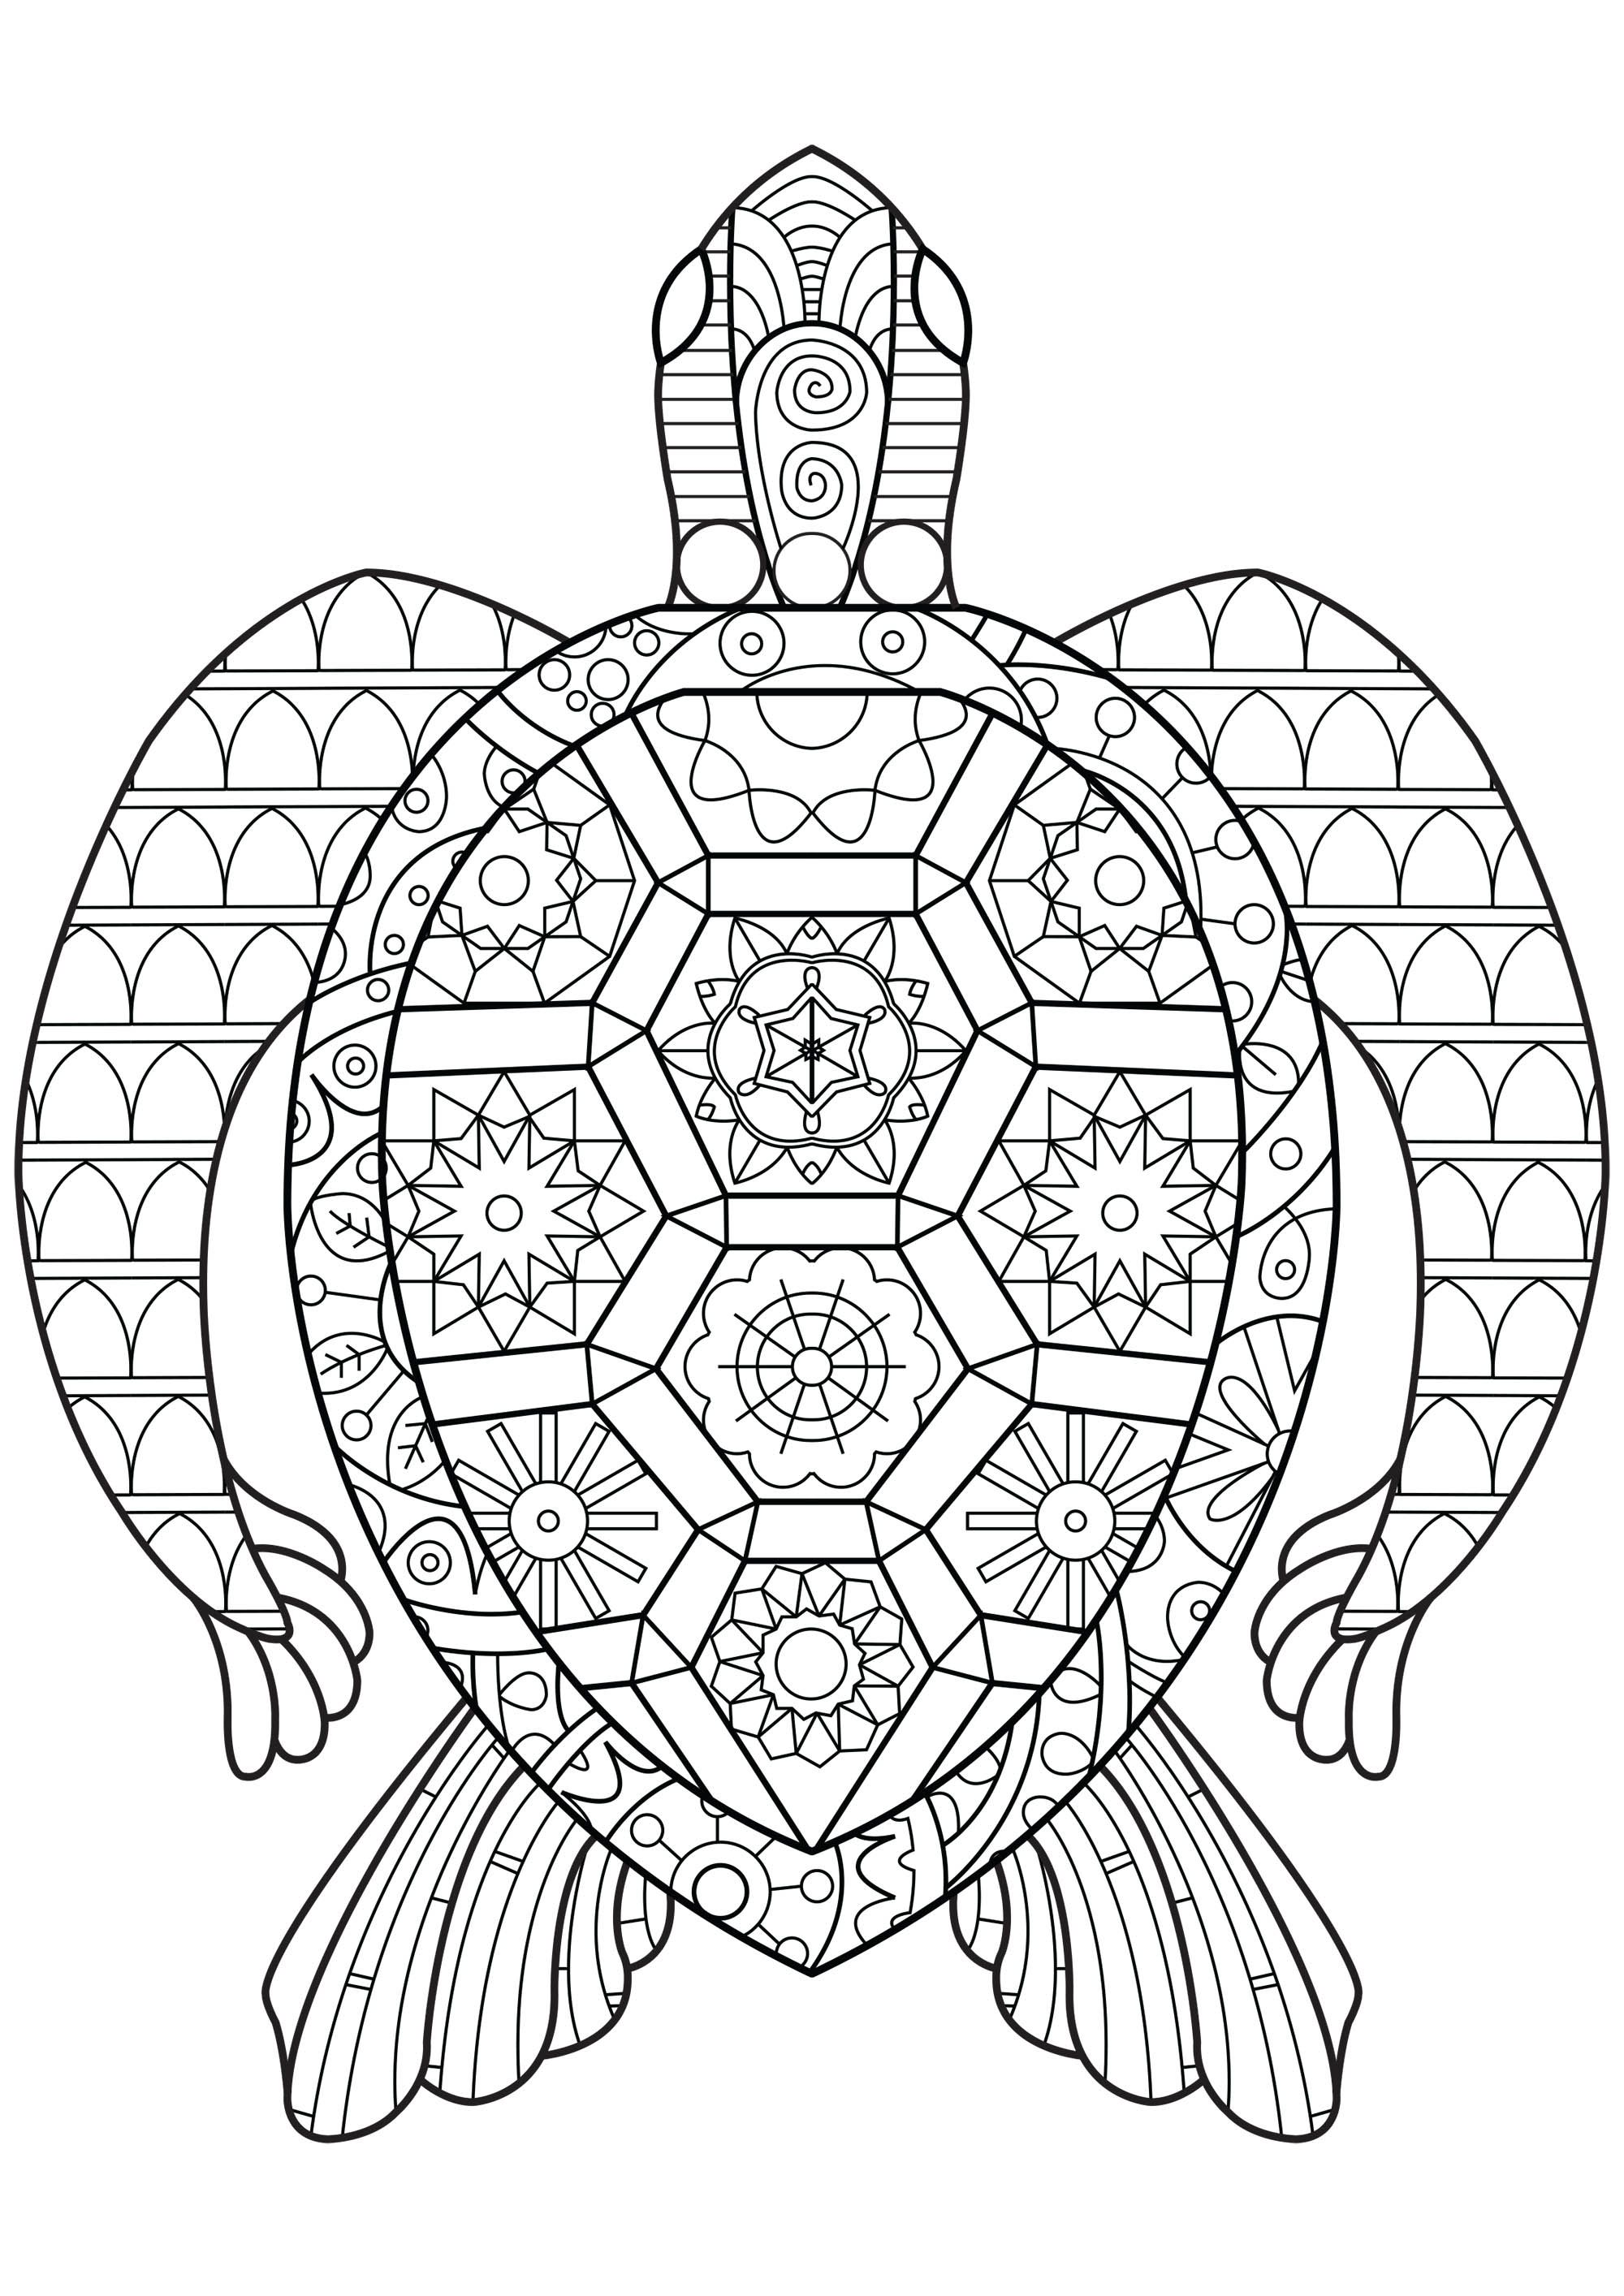 Simple Geometric Turtle Coloring Pages